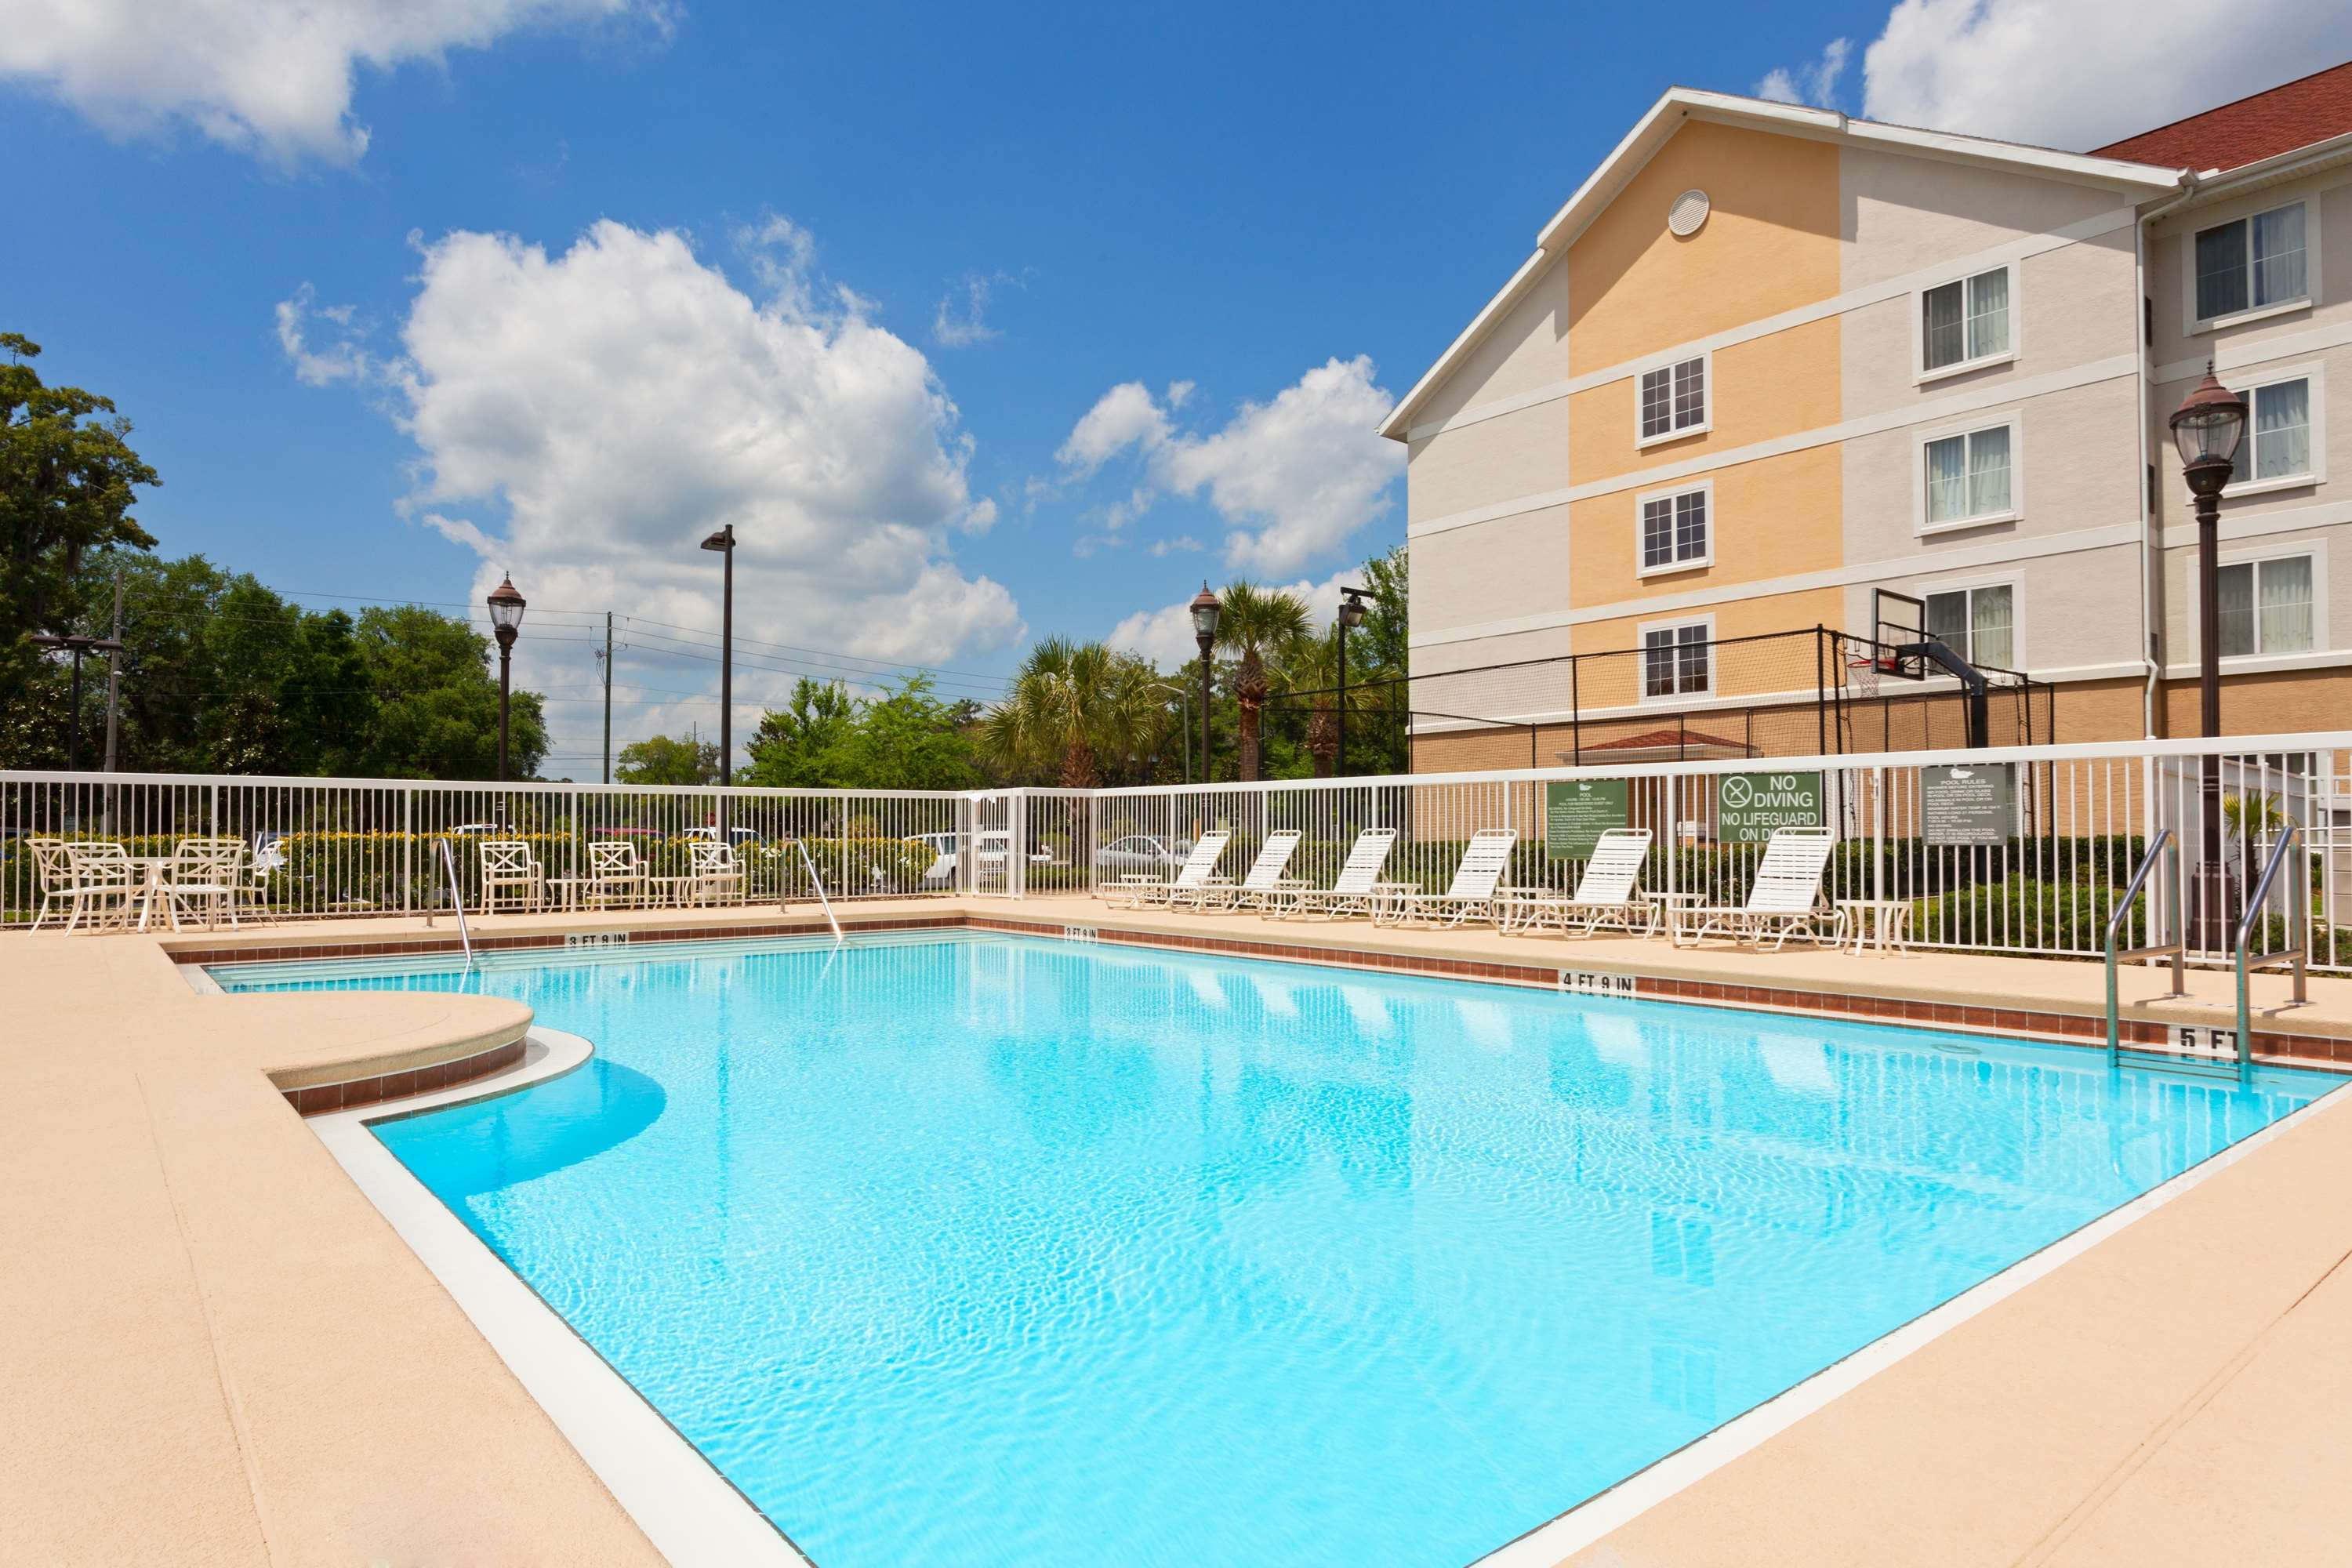 Homewood Suites by Hilton Gainesville image 3